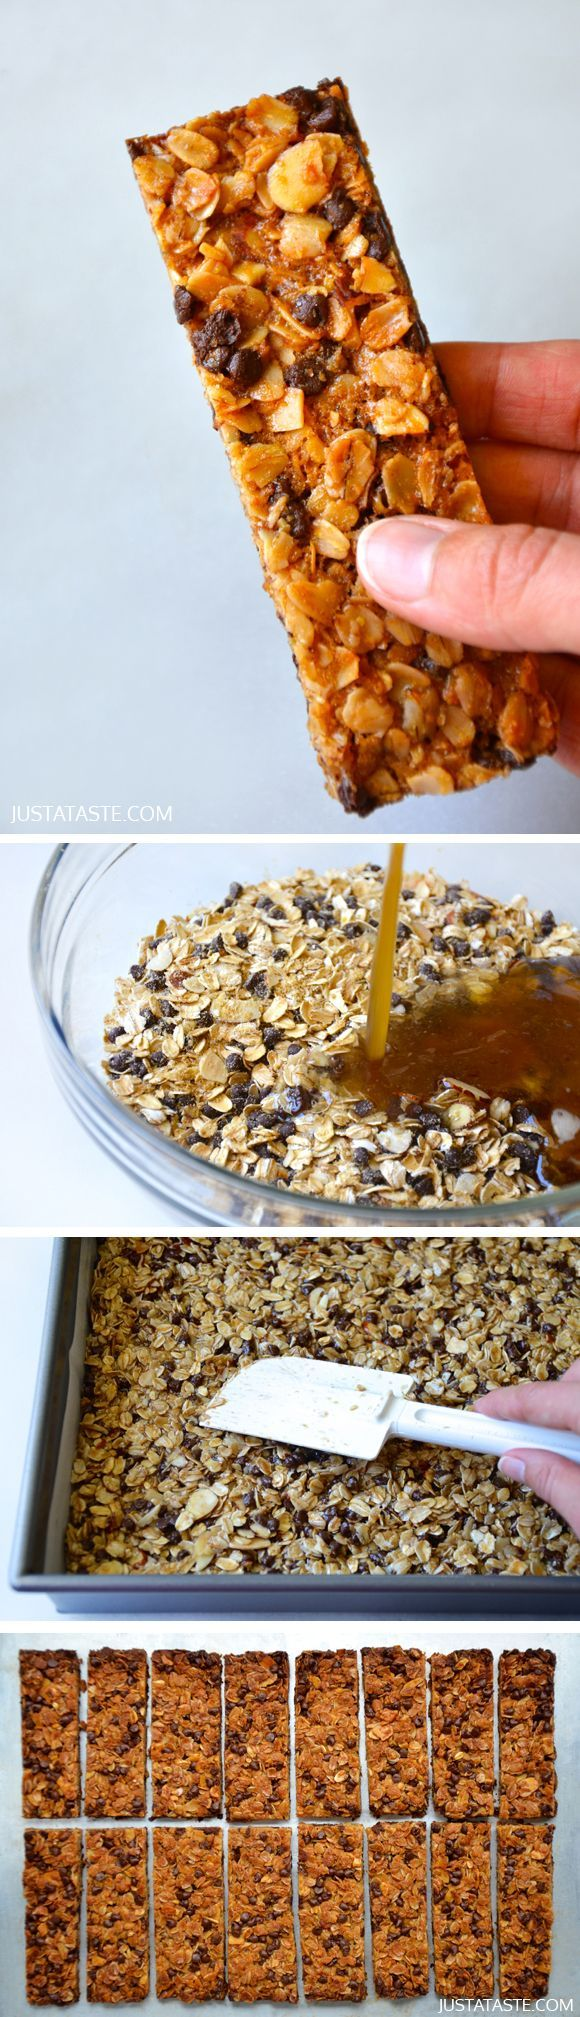 Easy Homemade Chocolate Chip Granola Bars #healthy #granolabar #recipe